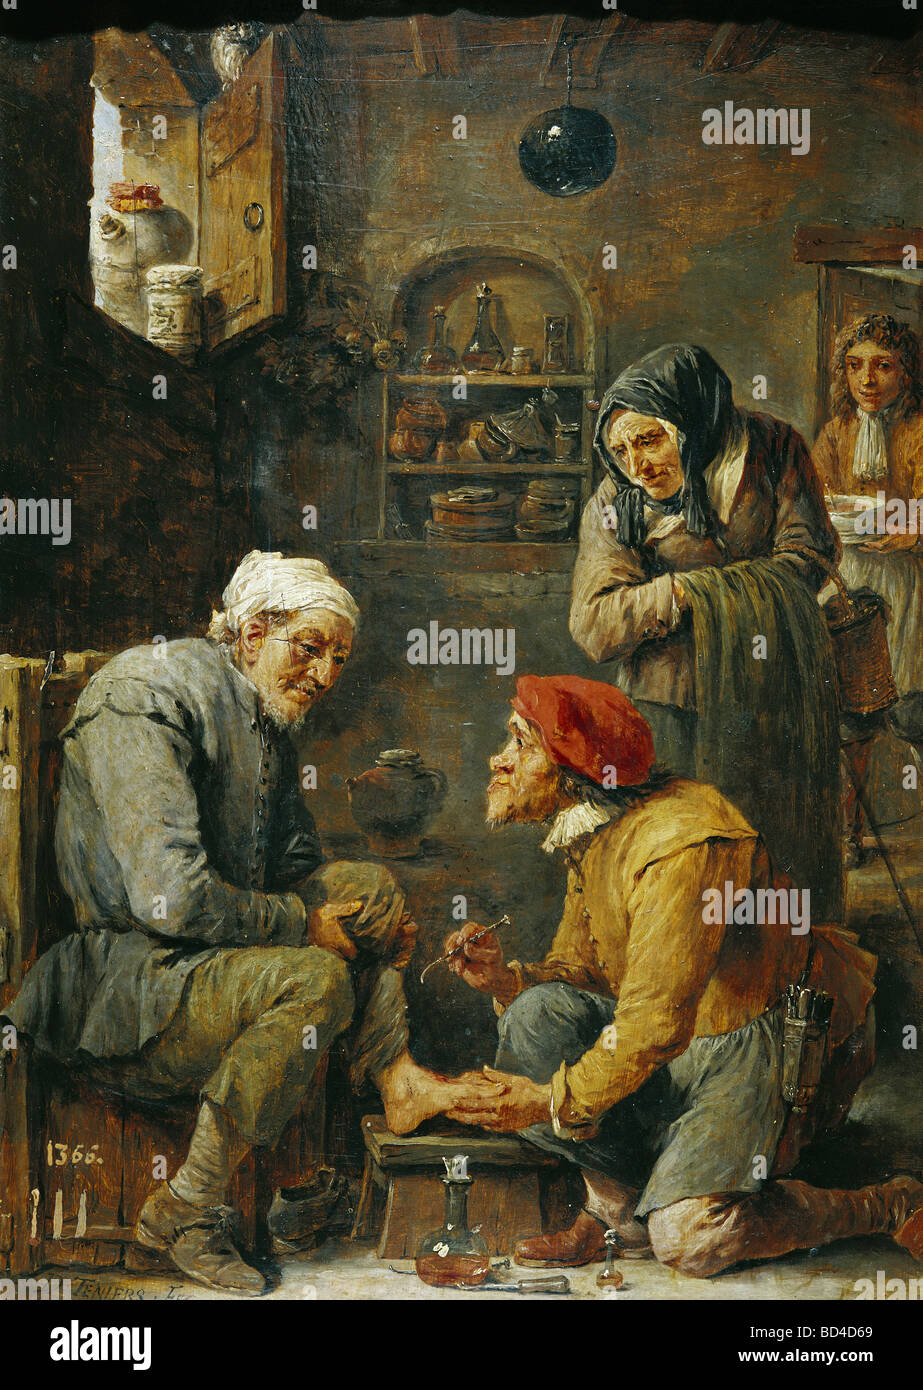 Teniers, David the Younger (1610 - 1690), painting, 'Surgical Operation', Prado, Madrid, Baroque, 'Operacion - Stock Image